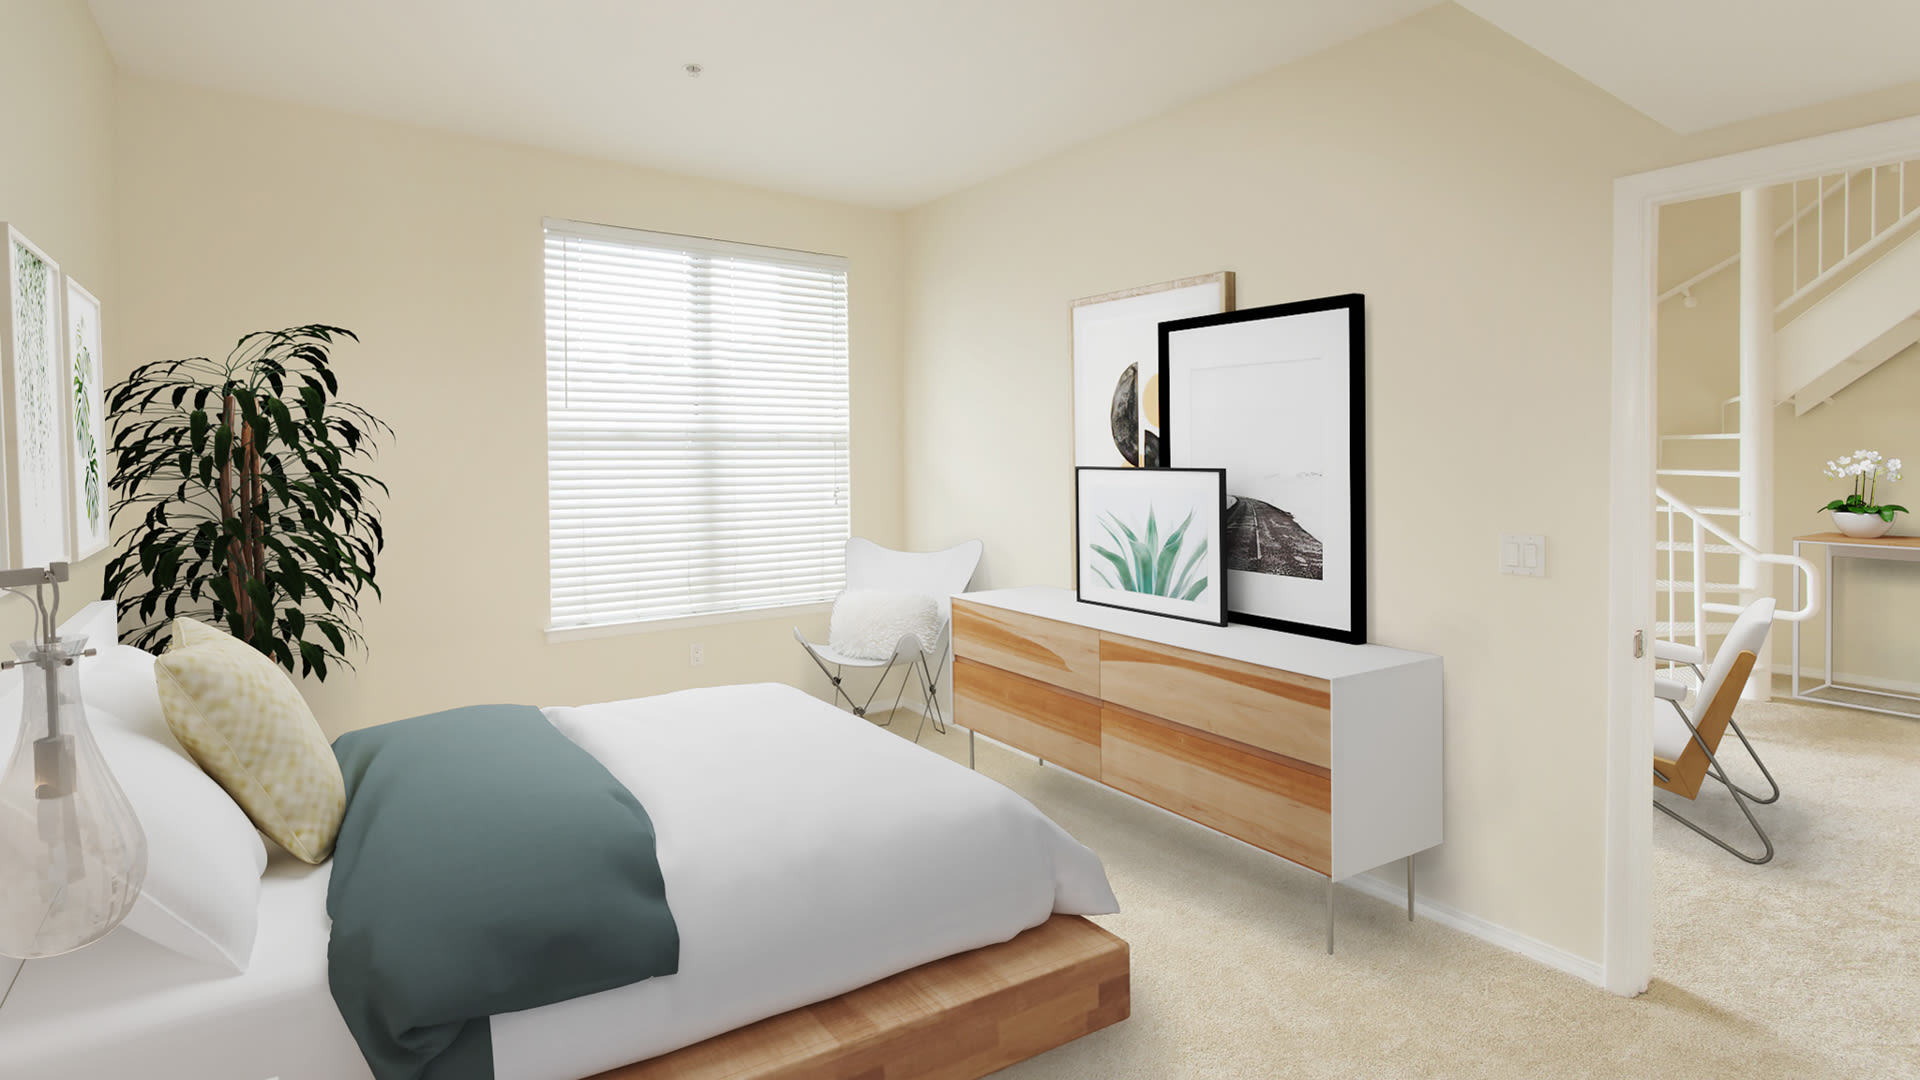 Pacific Place Apartments - Carpeted Bedroom